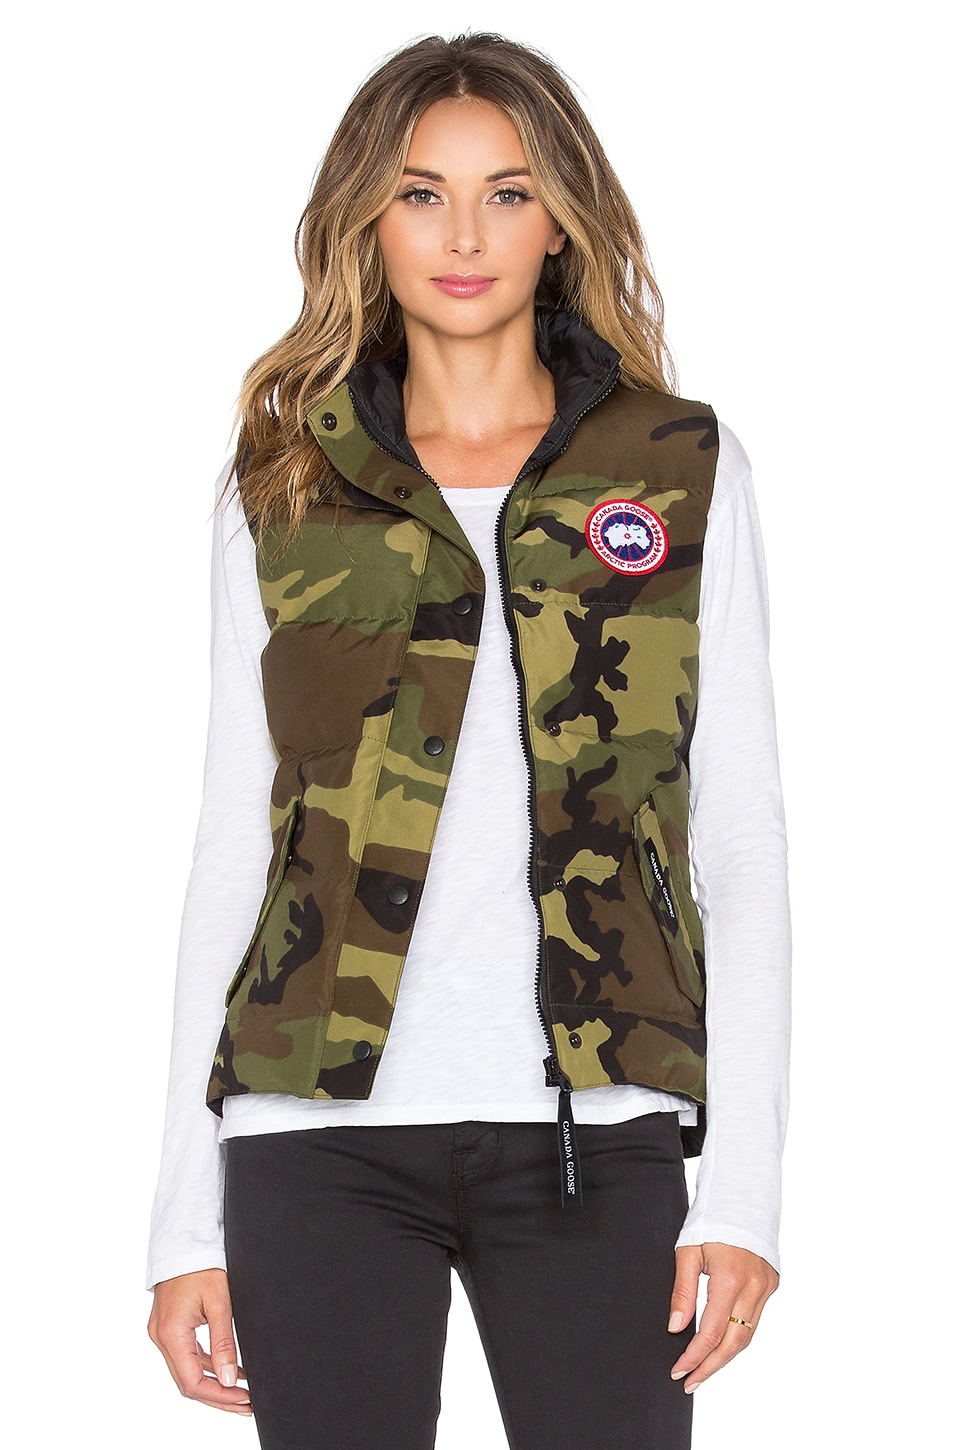 Canada Goose' shop with a cop